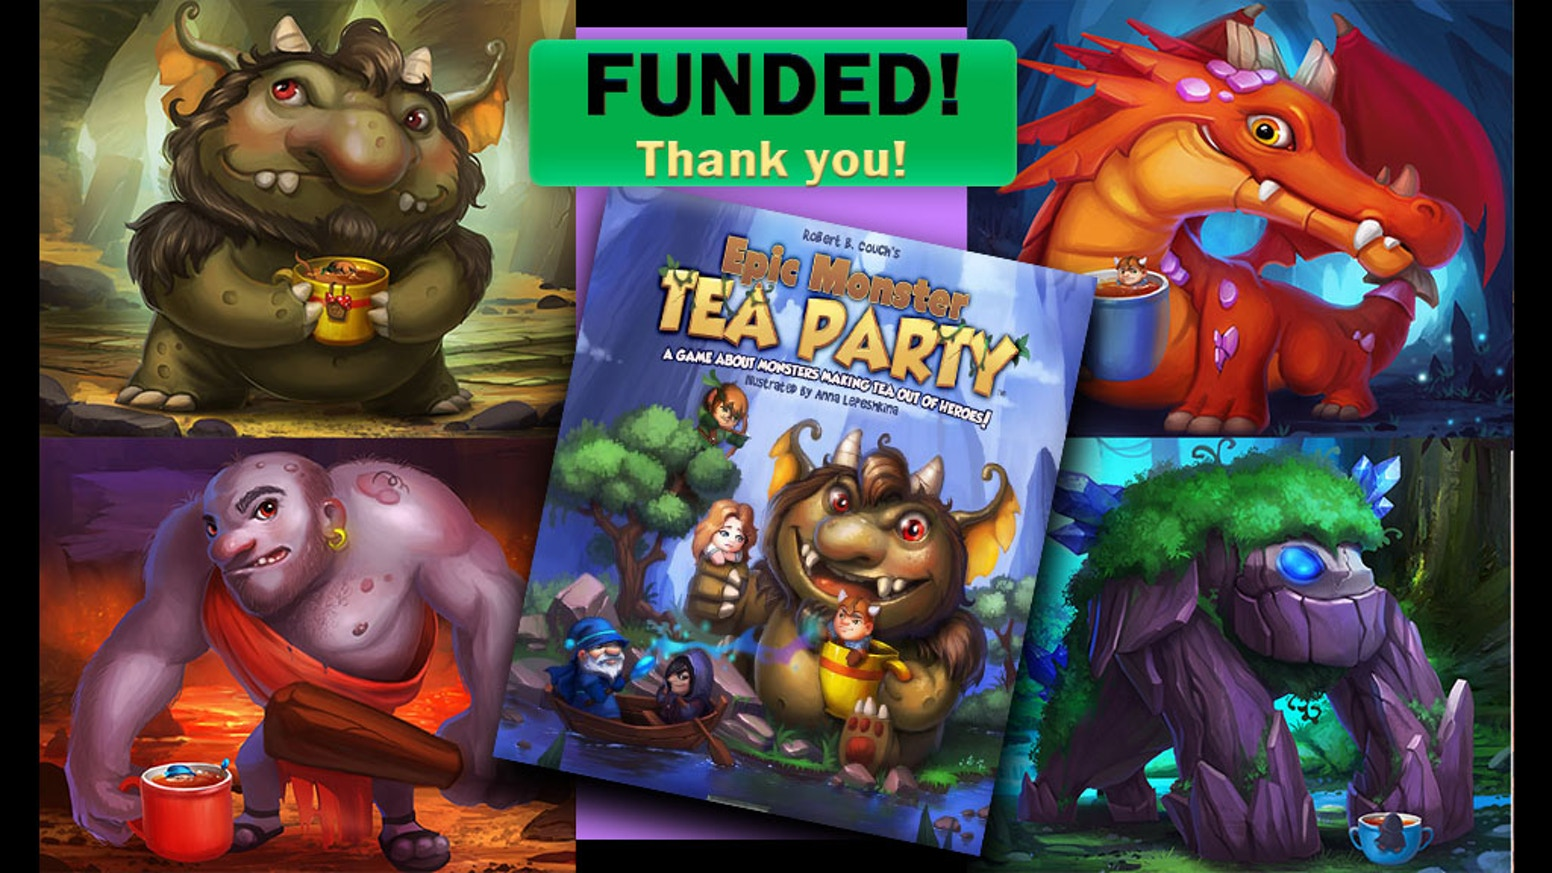 A 20-minute, family-fun, fantasy, tabletop game about thirsty monsters making tasty tea out of yummy heroes! (Up to 4 players, but an expansion funded on Kickstarter in 2020 that now allows you to play with up to 6 players!)